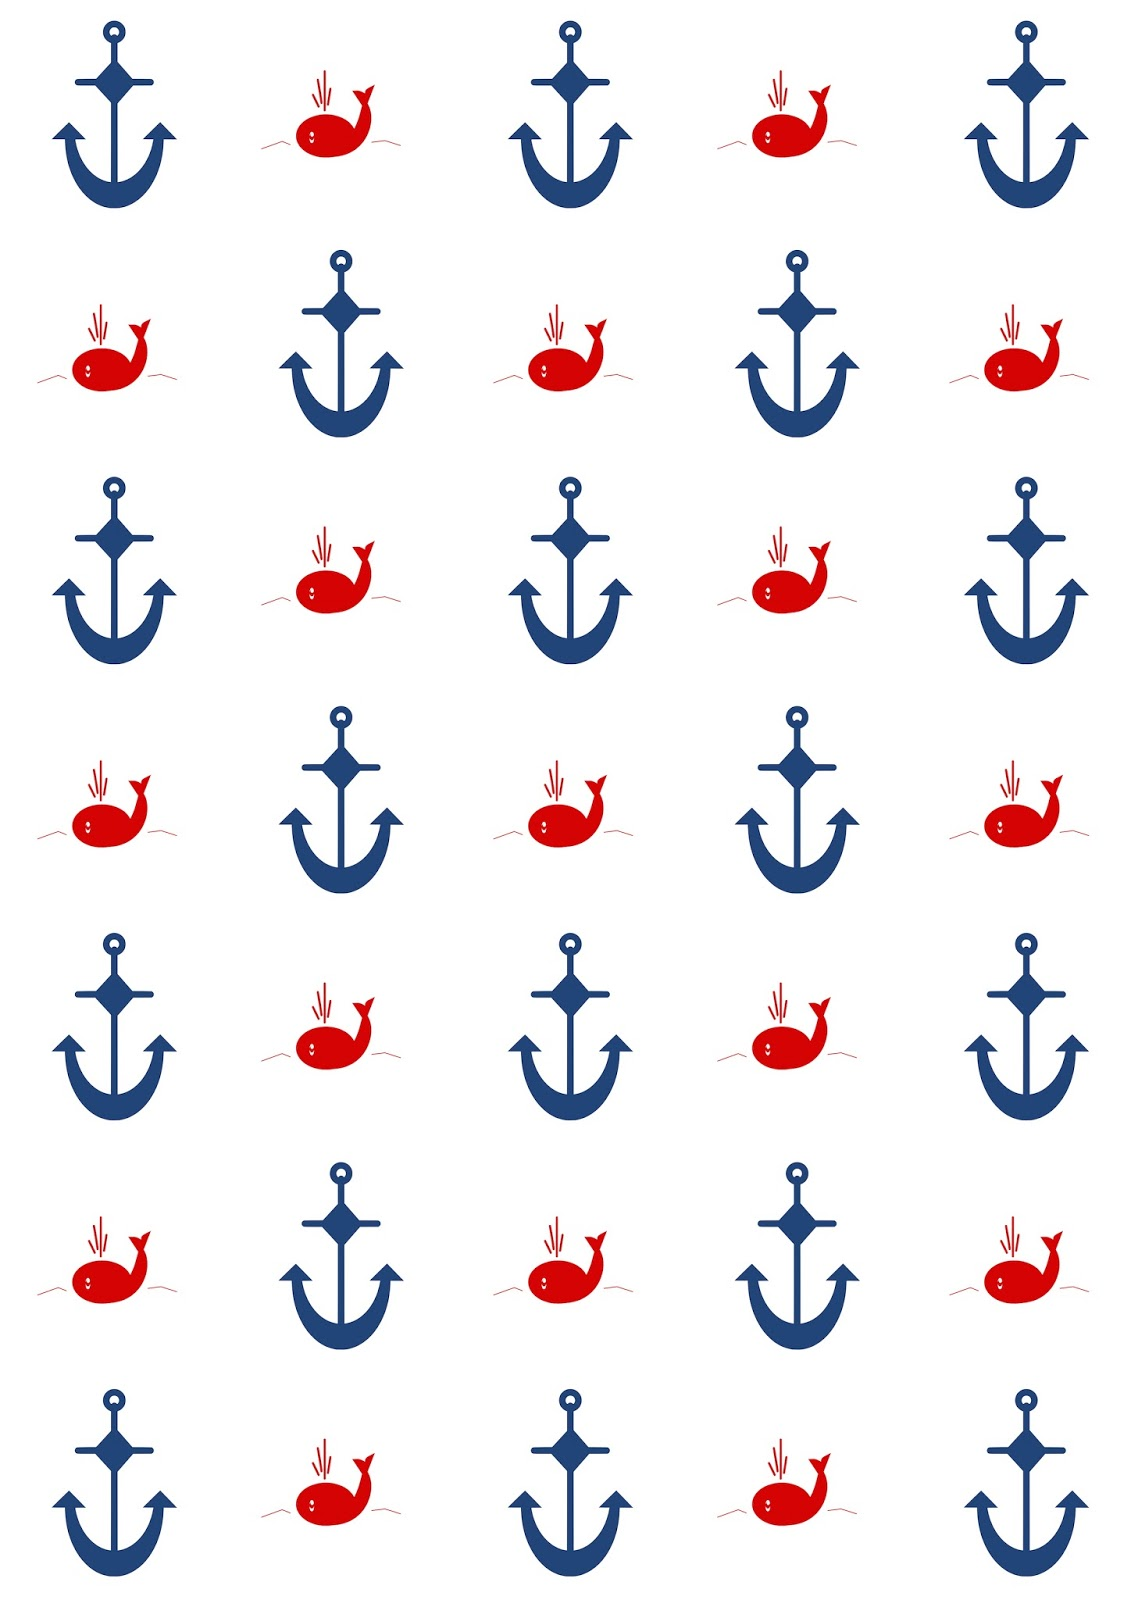 This is an image of Gutsy Printable Anchor Template